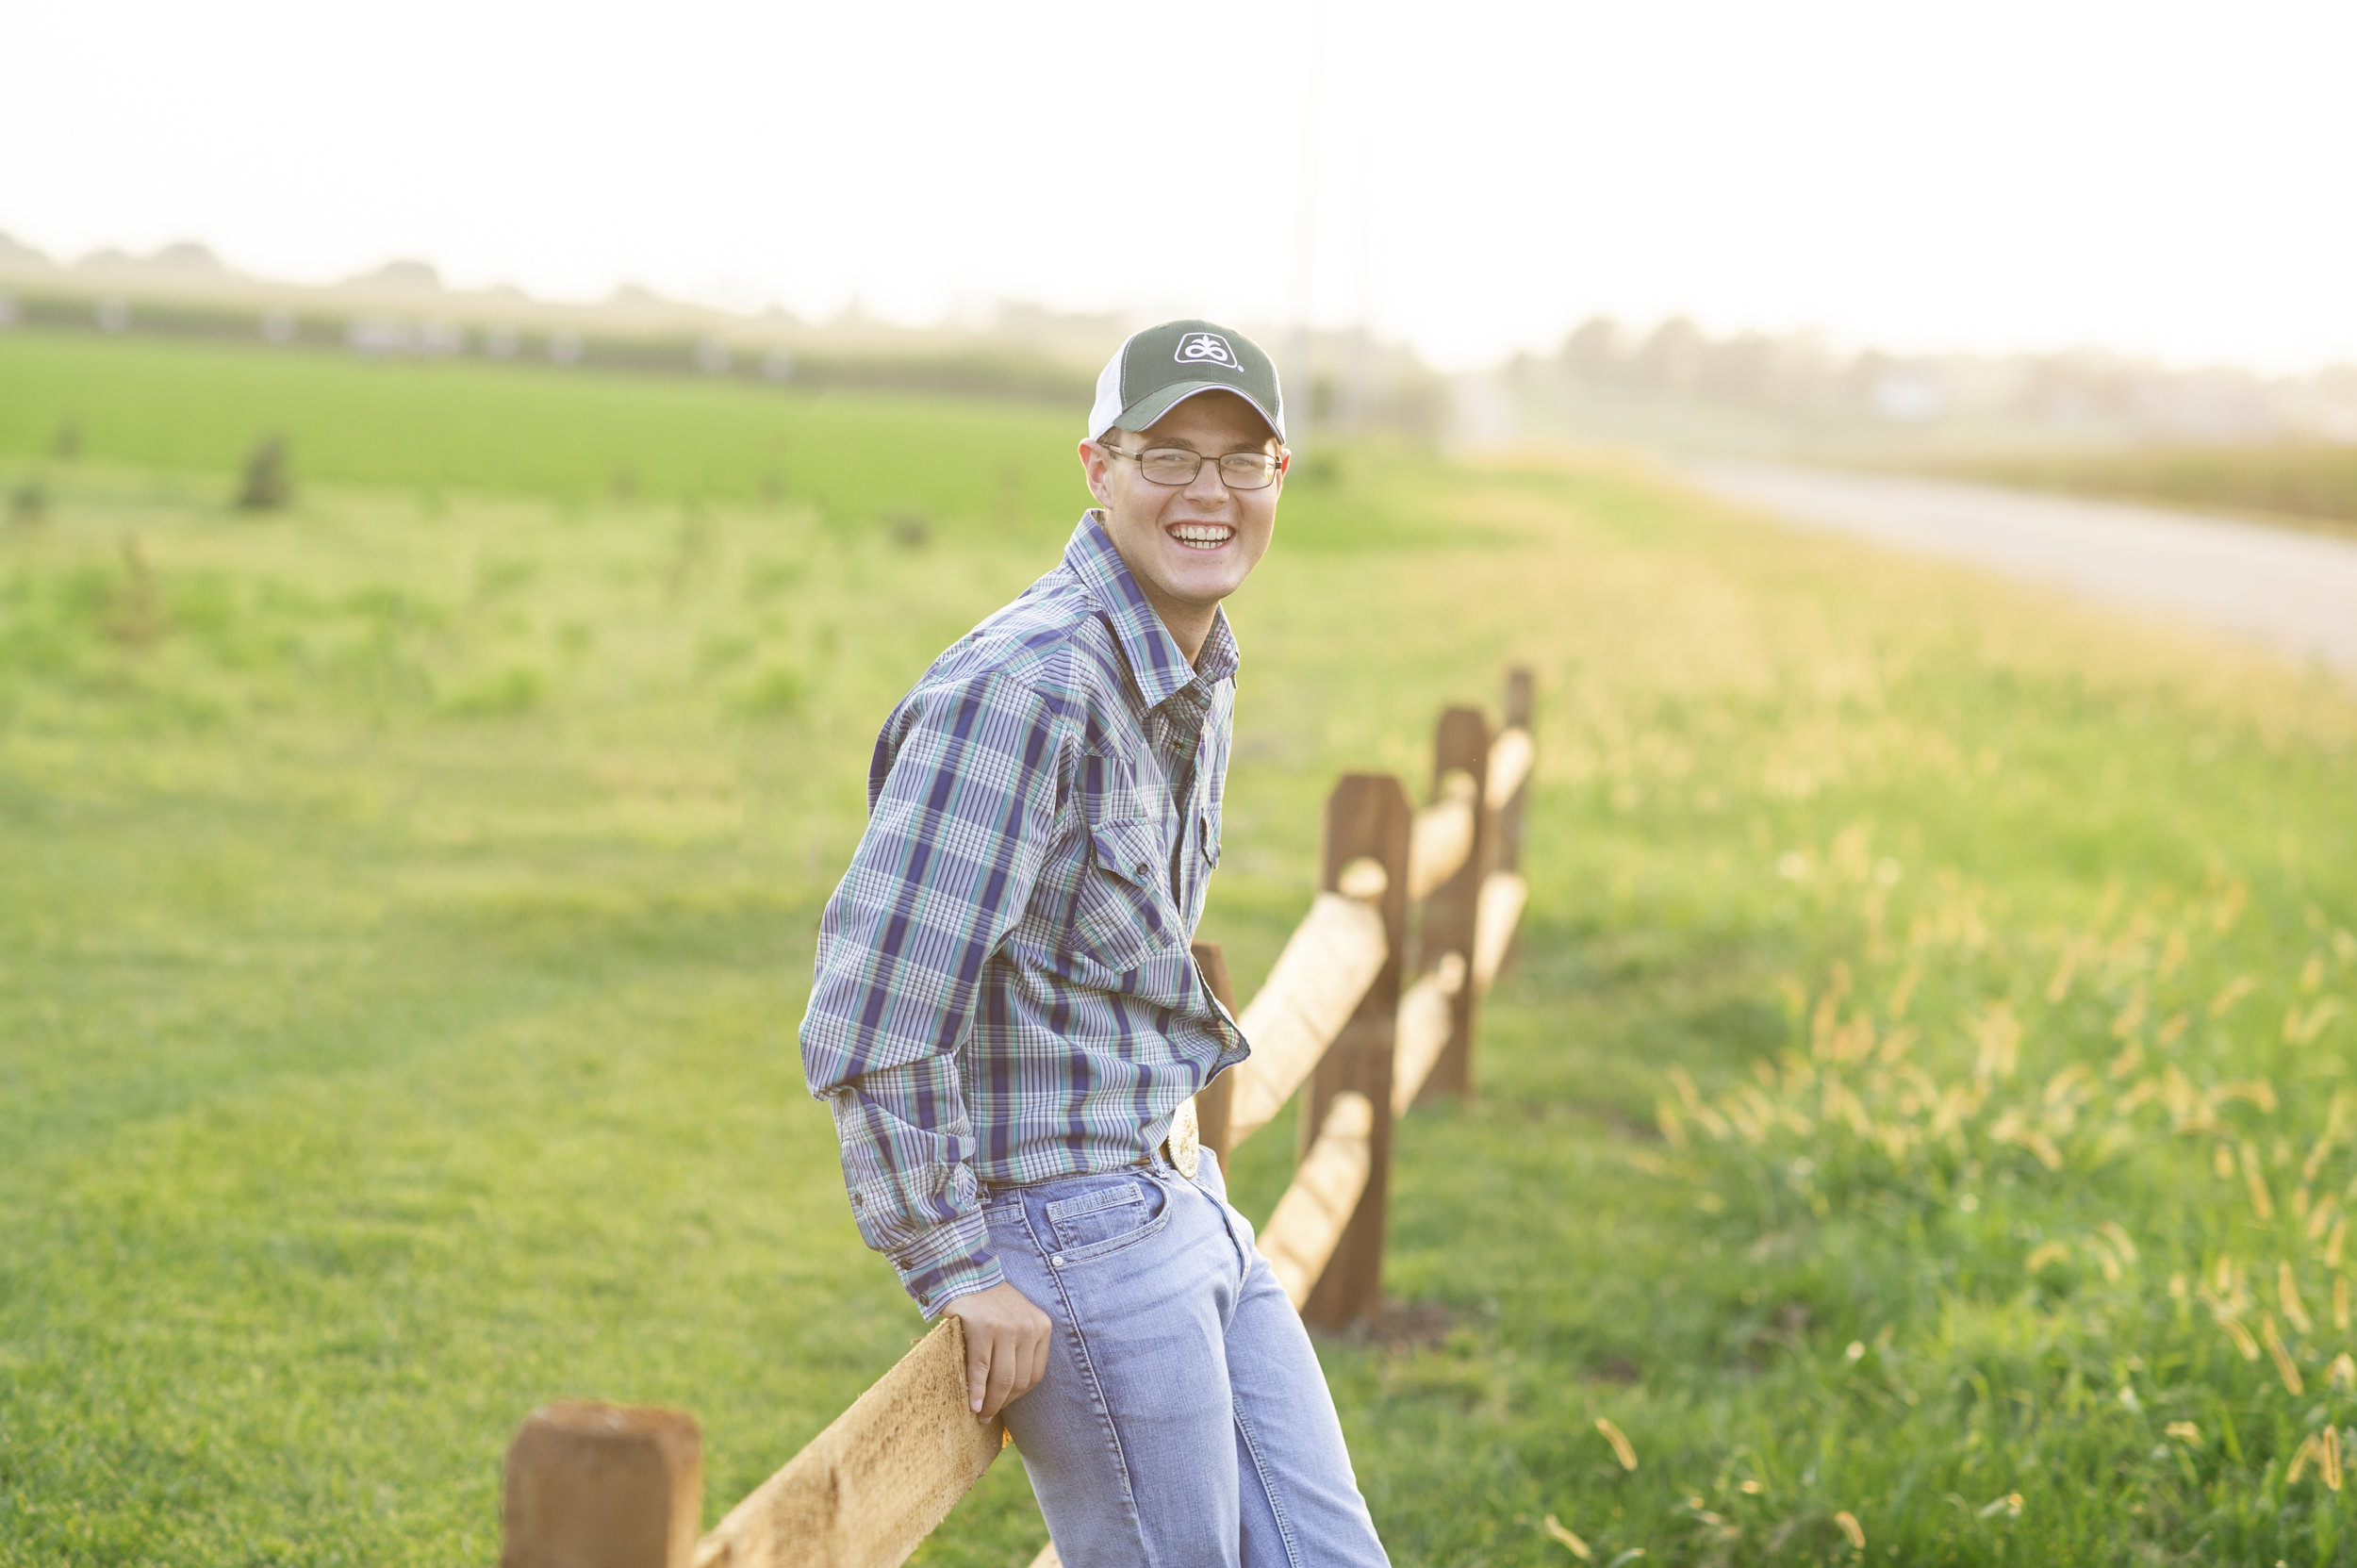 dirt-road-photography-kelsey-nerudwilber-nebraska-southeast-photographer-senior-farm-grass-sunshine-sunflare-sunset-guy-boy-senior-high-school-wilber-clatonia-southeast-nebraska-photgrapher-photography-green-grass-wood-fence-glasses-plaid-shirt-jeans-boots-belt-buckle-seed-company-baseball-cap